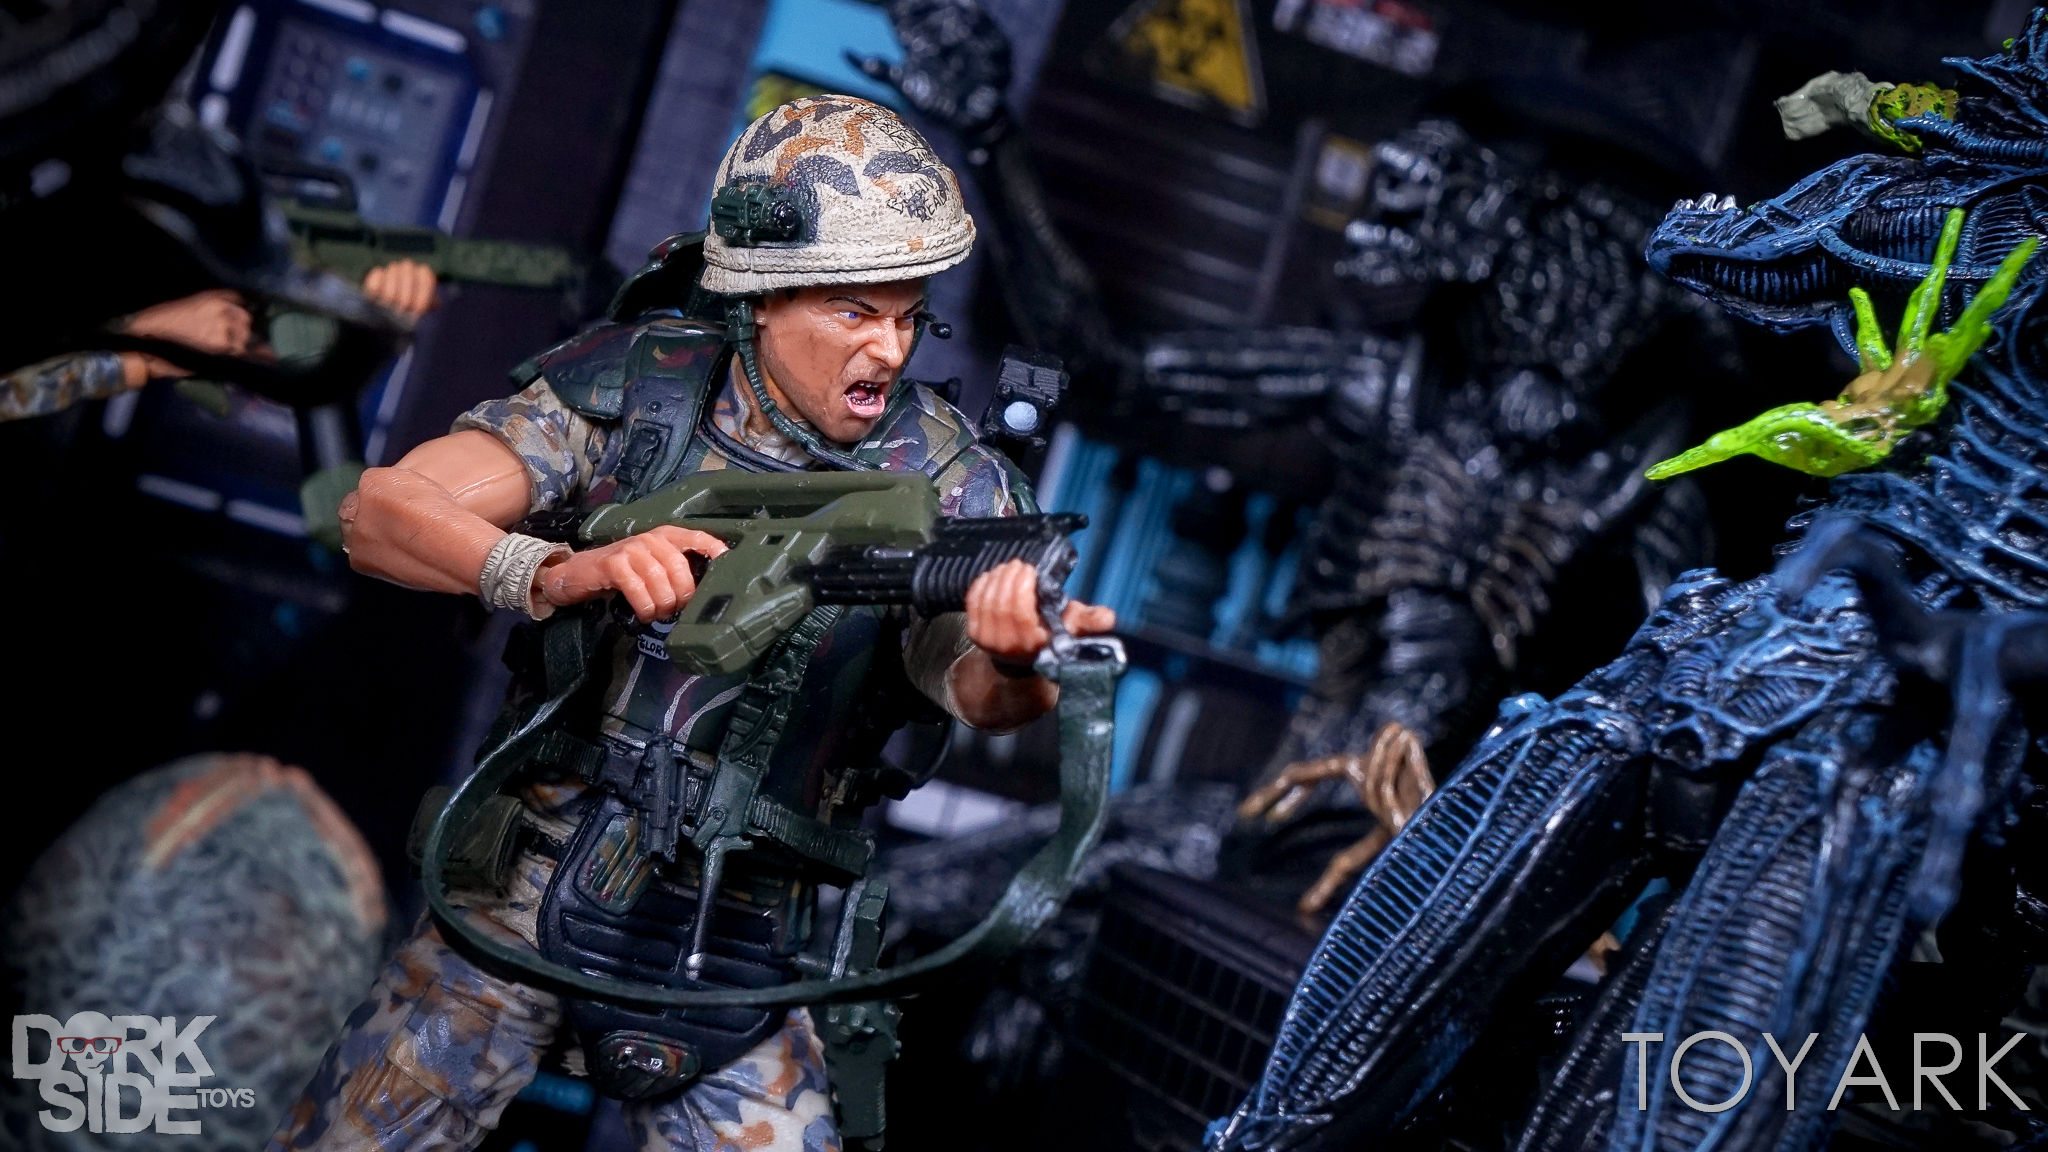 http://news.toyark.com/wp-content/uploads/sites/4/2017/03/NECA-Aliens-Colonial-Marines-2-Pack-036.jpg